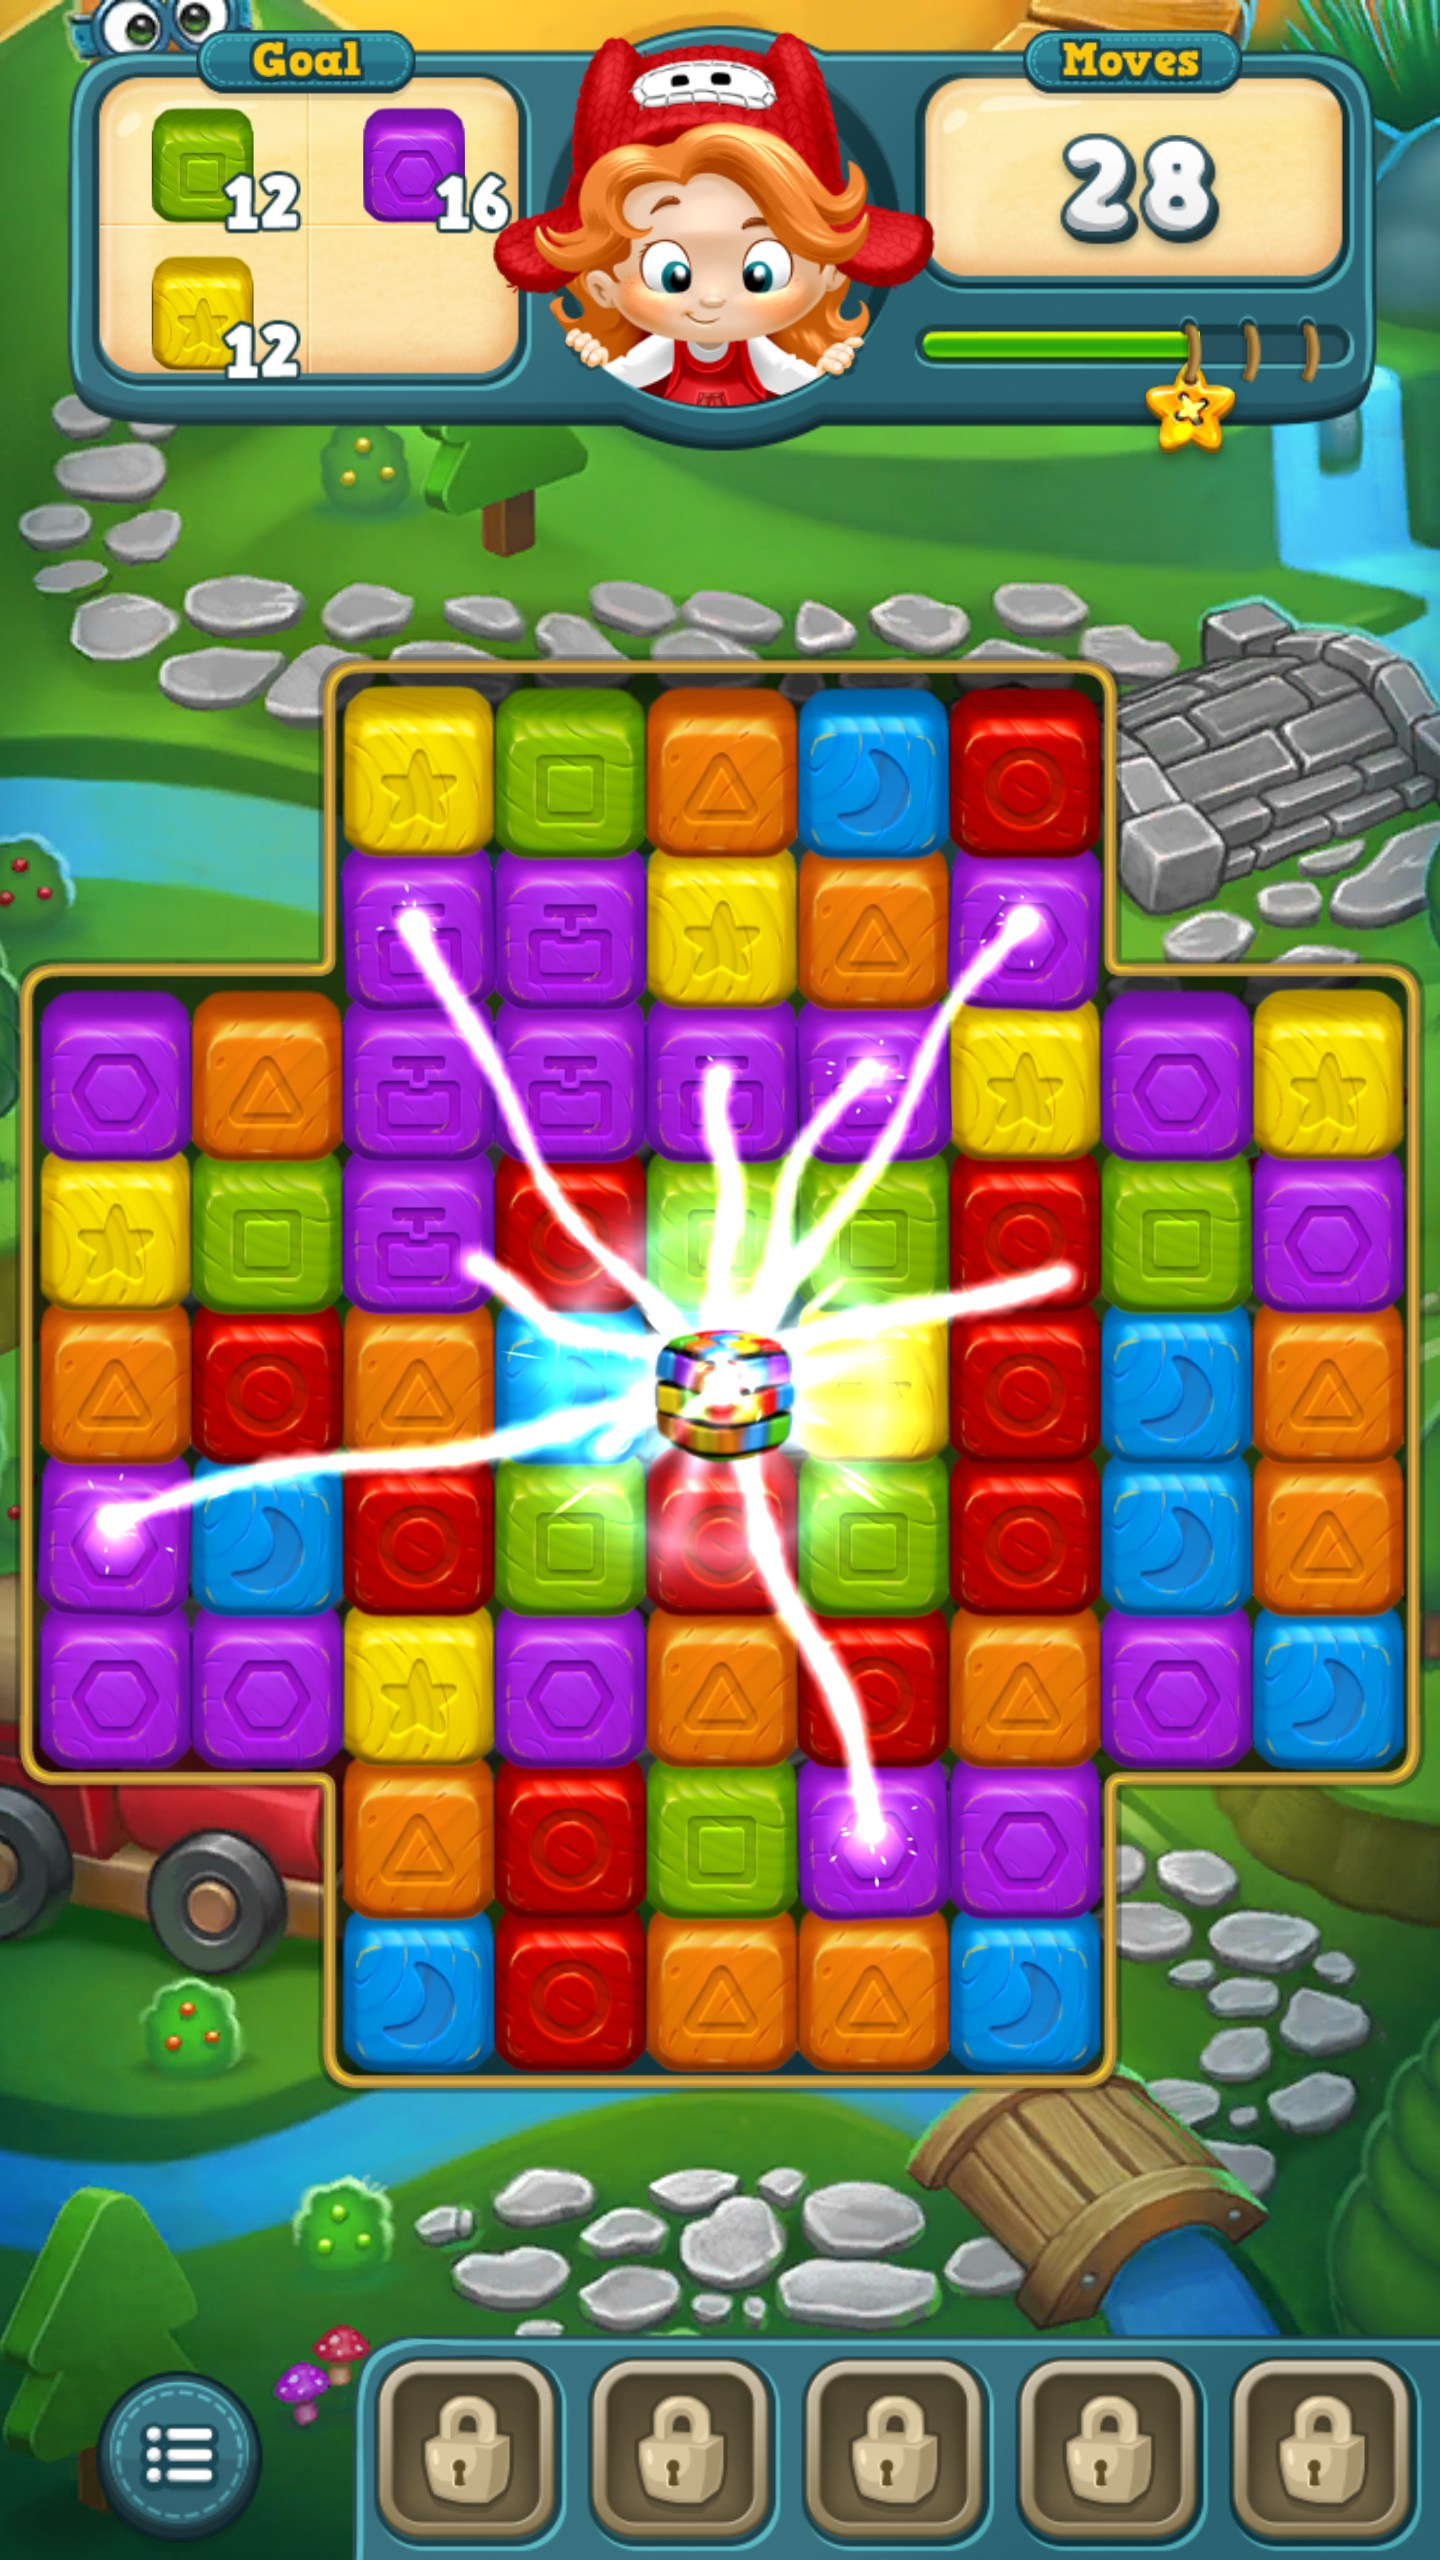 Toy Blast Game Free Download : Toy blast for dell venue free download games